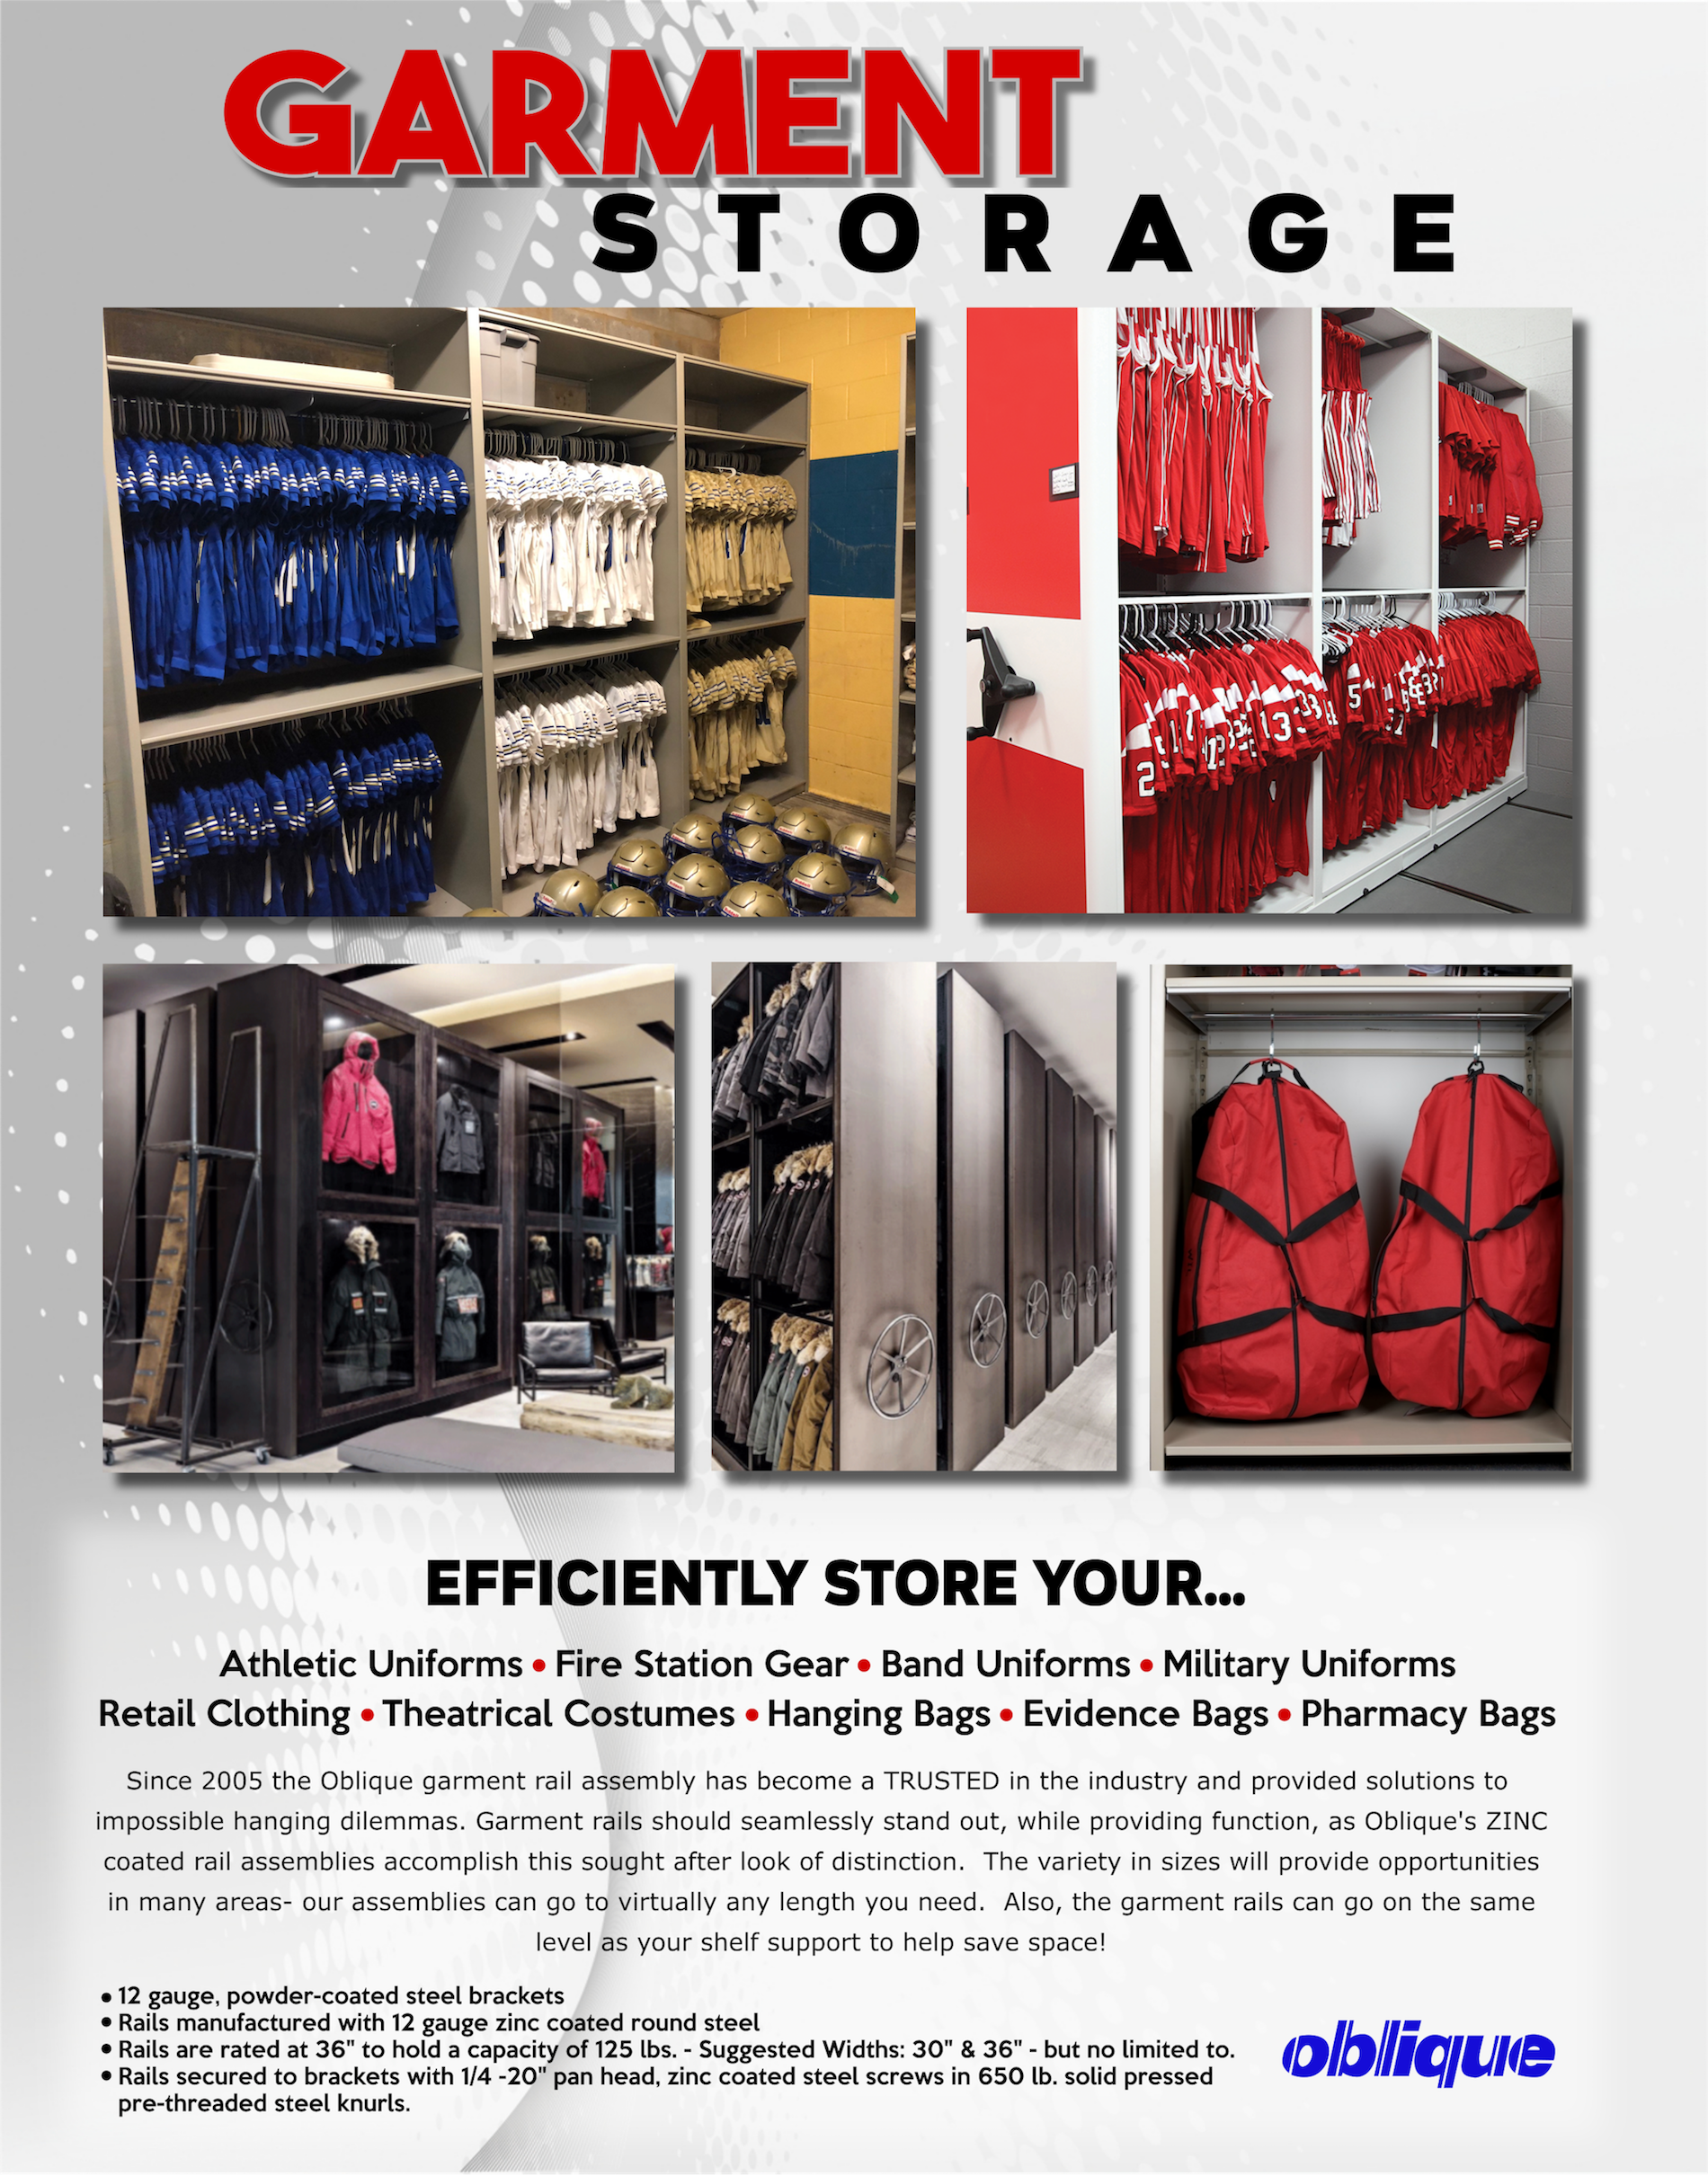 OBLIQUE'S GARMENT STORAGE